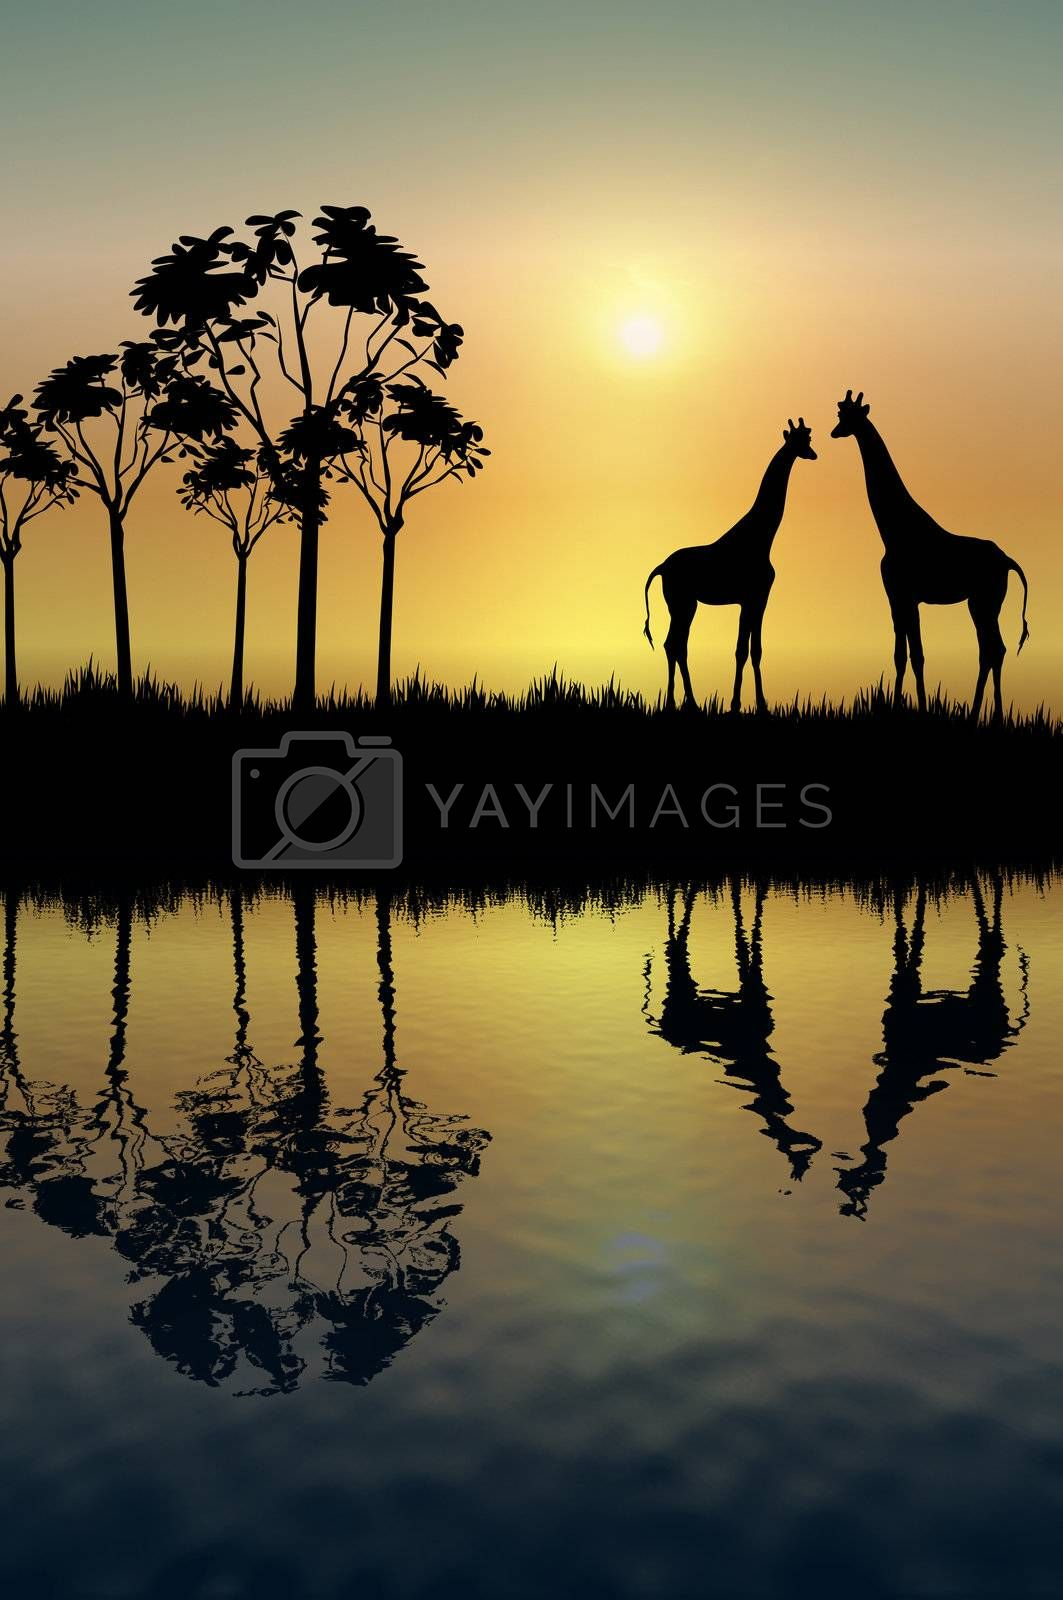 Giraffe Reflection by srnicholl